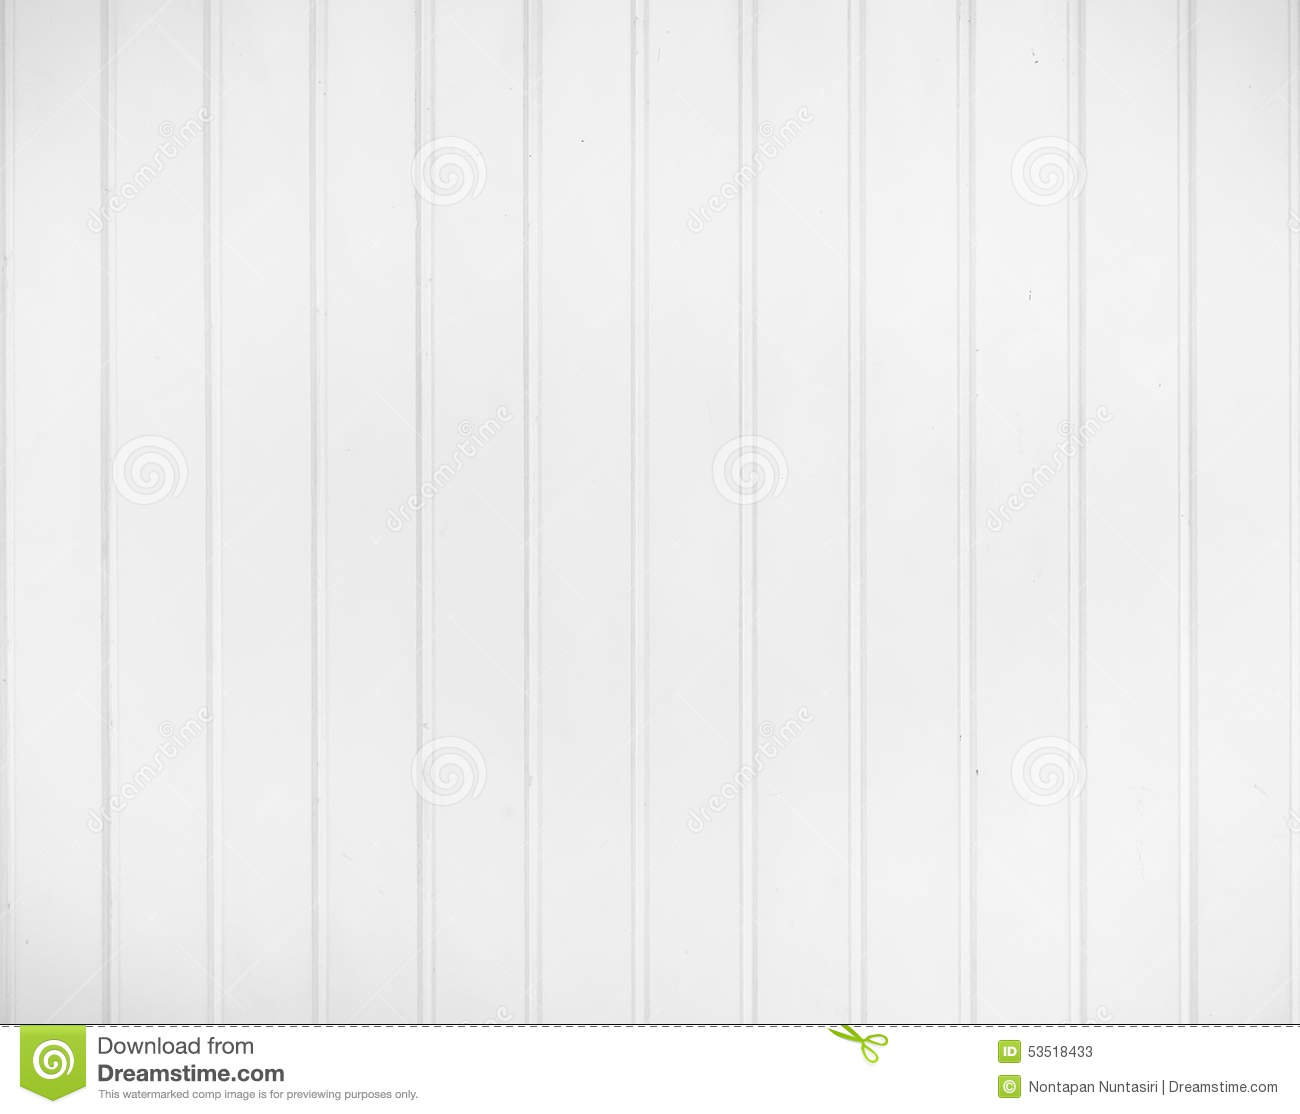 White Panel Wall Stock Photo Image 53518433